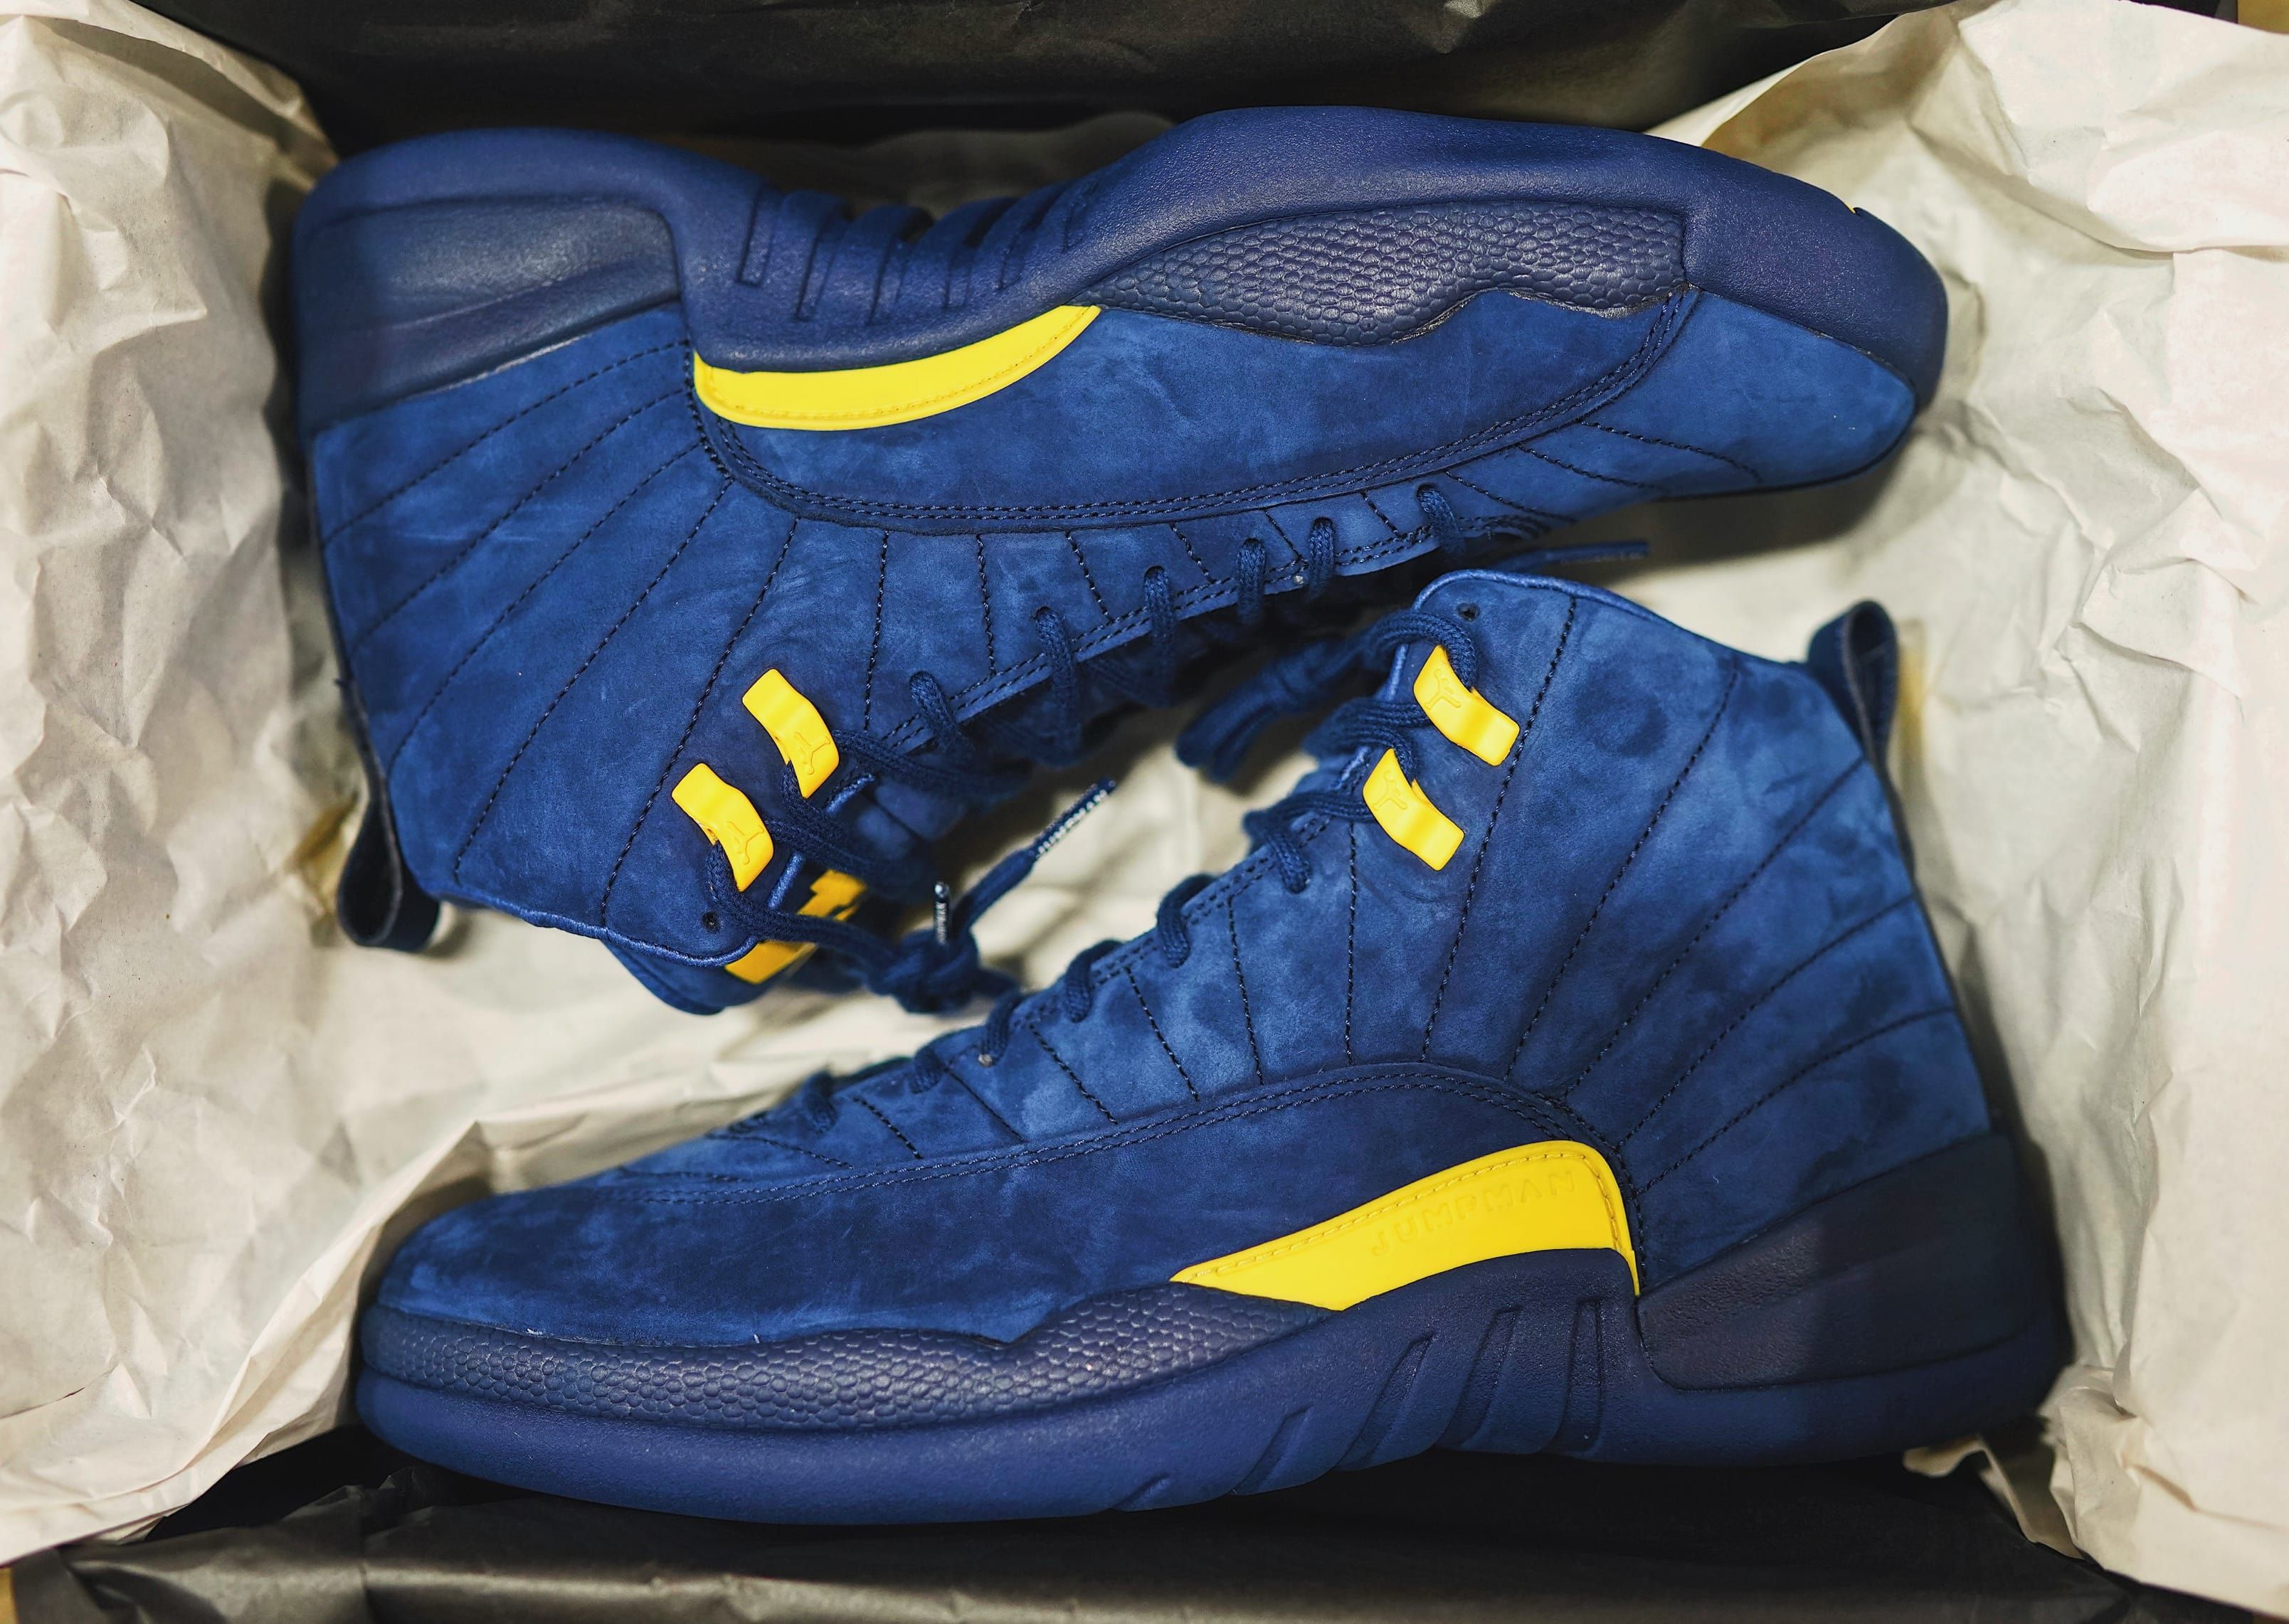 59df5ed48430  Michigan  Air Jordan 12 College Navy Amarillo BQ3180-407 Release Date